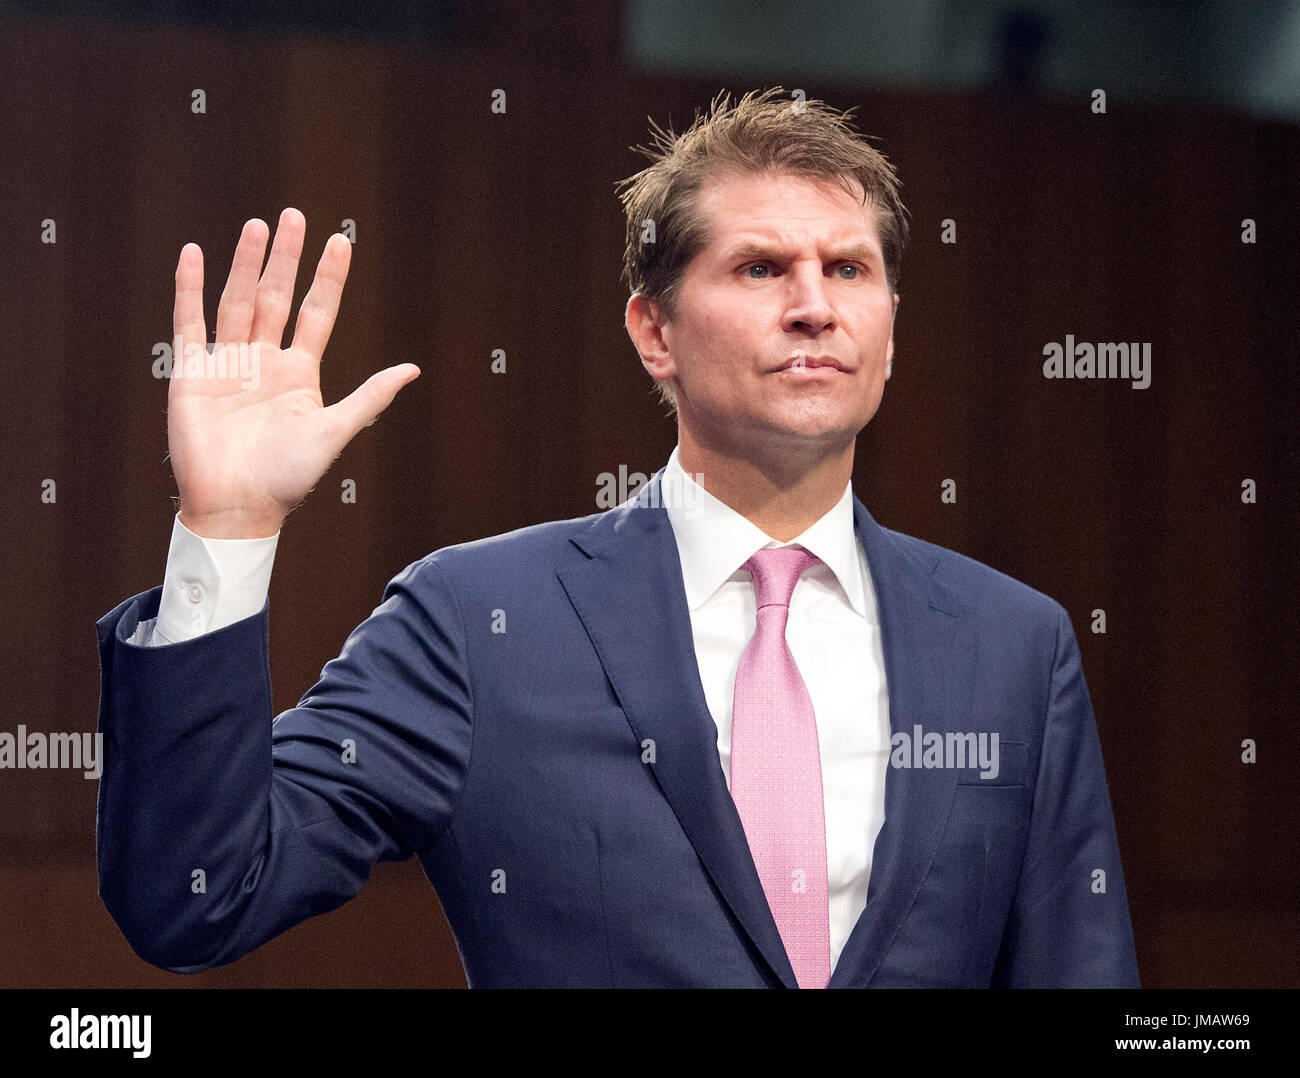 Washington, Us. 26th July, 2017. E.W. 'Bill' Priestap, Assistant Director, Counterintelligence Division, Federal Bureau Of Investigation (FBI), is sworn-in to testify before the US Senate Committee on the Judiciary oversight hearing to examine the Foreign Agents Registration Act (FARA) and attempts to influence US elections, focusing on lessons learned from current and prior administrations on Capitol Hill in Washington, DC on Wednesday, July 26, 2017. Credit: Ron Sachs/CNP - NO WIRE SERVICE - Photo: Ron Sachs/Consolidated/dpa/Alamy Live News - Stock Image